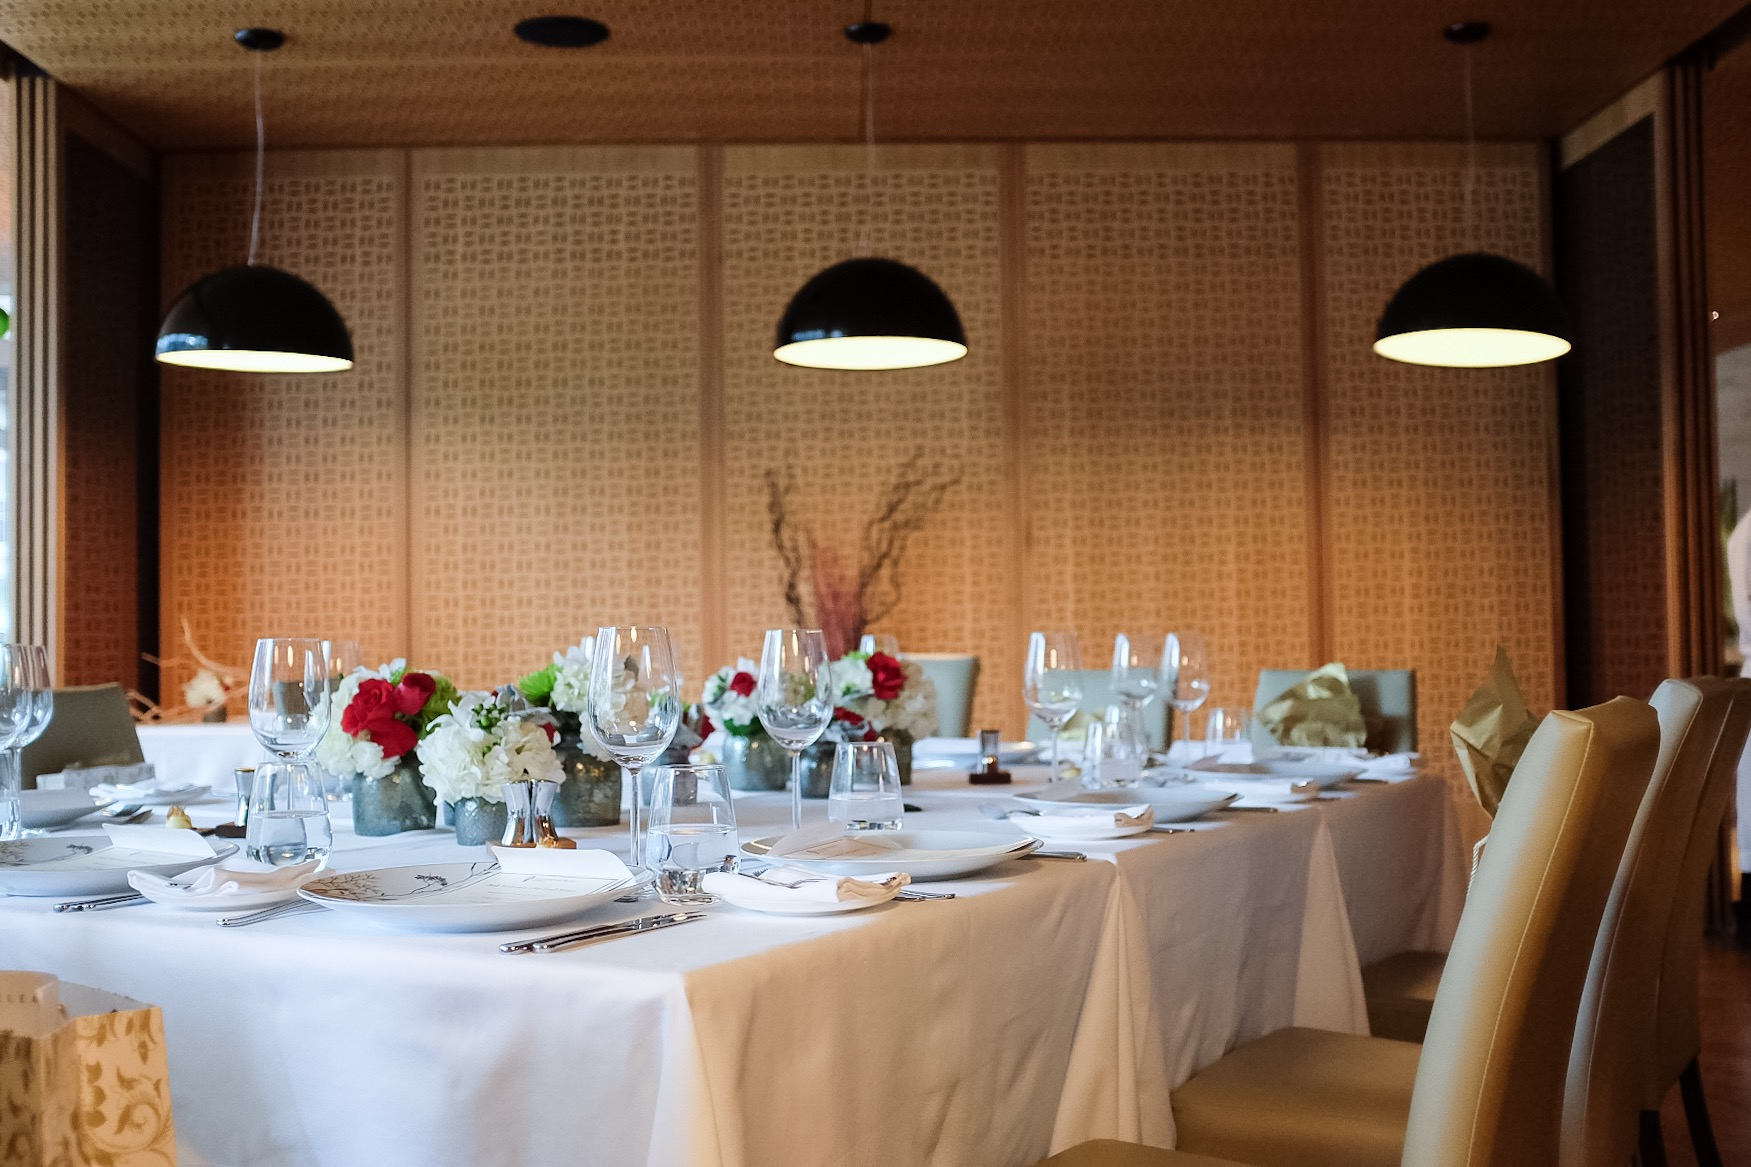 The gorgeous table setting courtesy of Bosk & the Shangri La hotel.